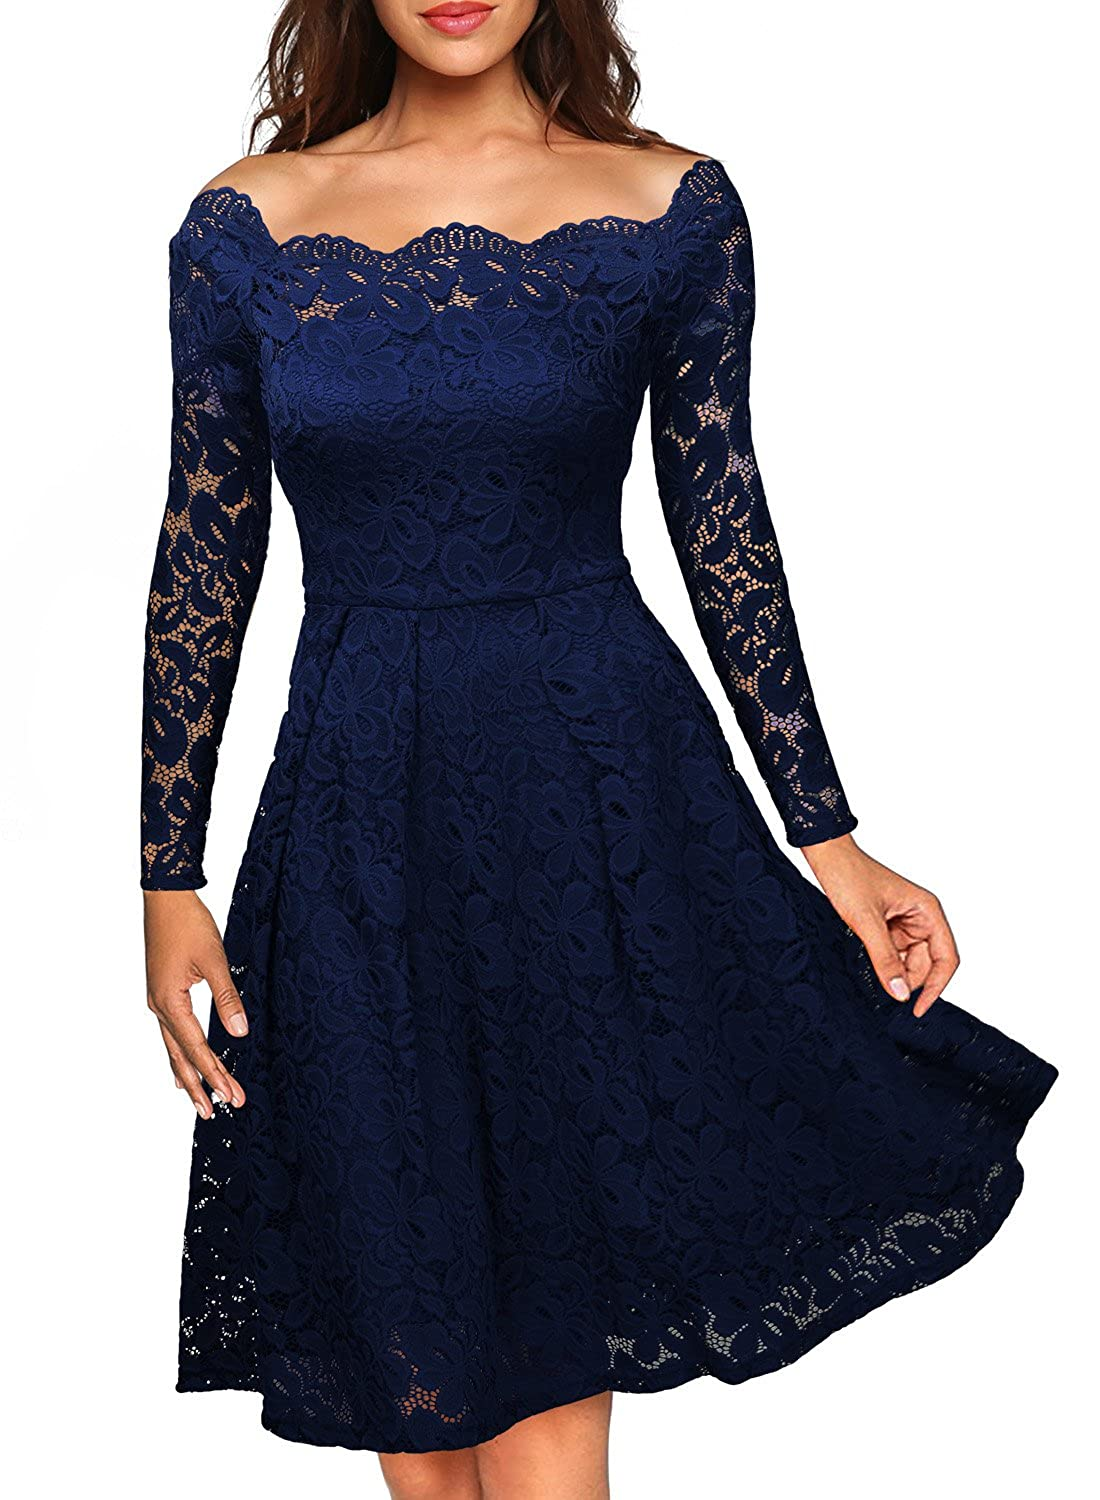 Blue dress question upon completing